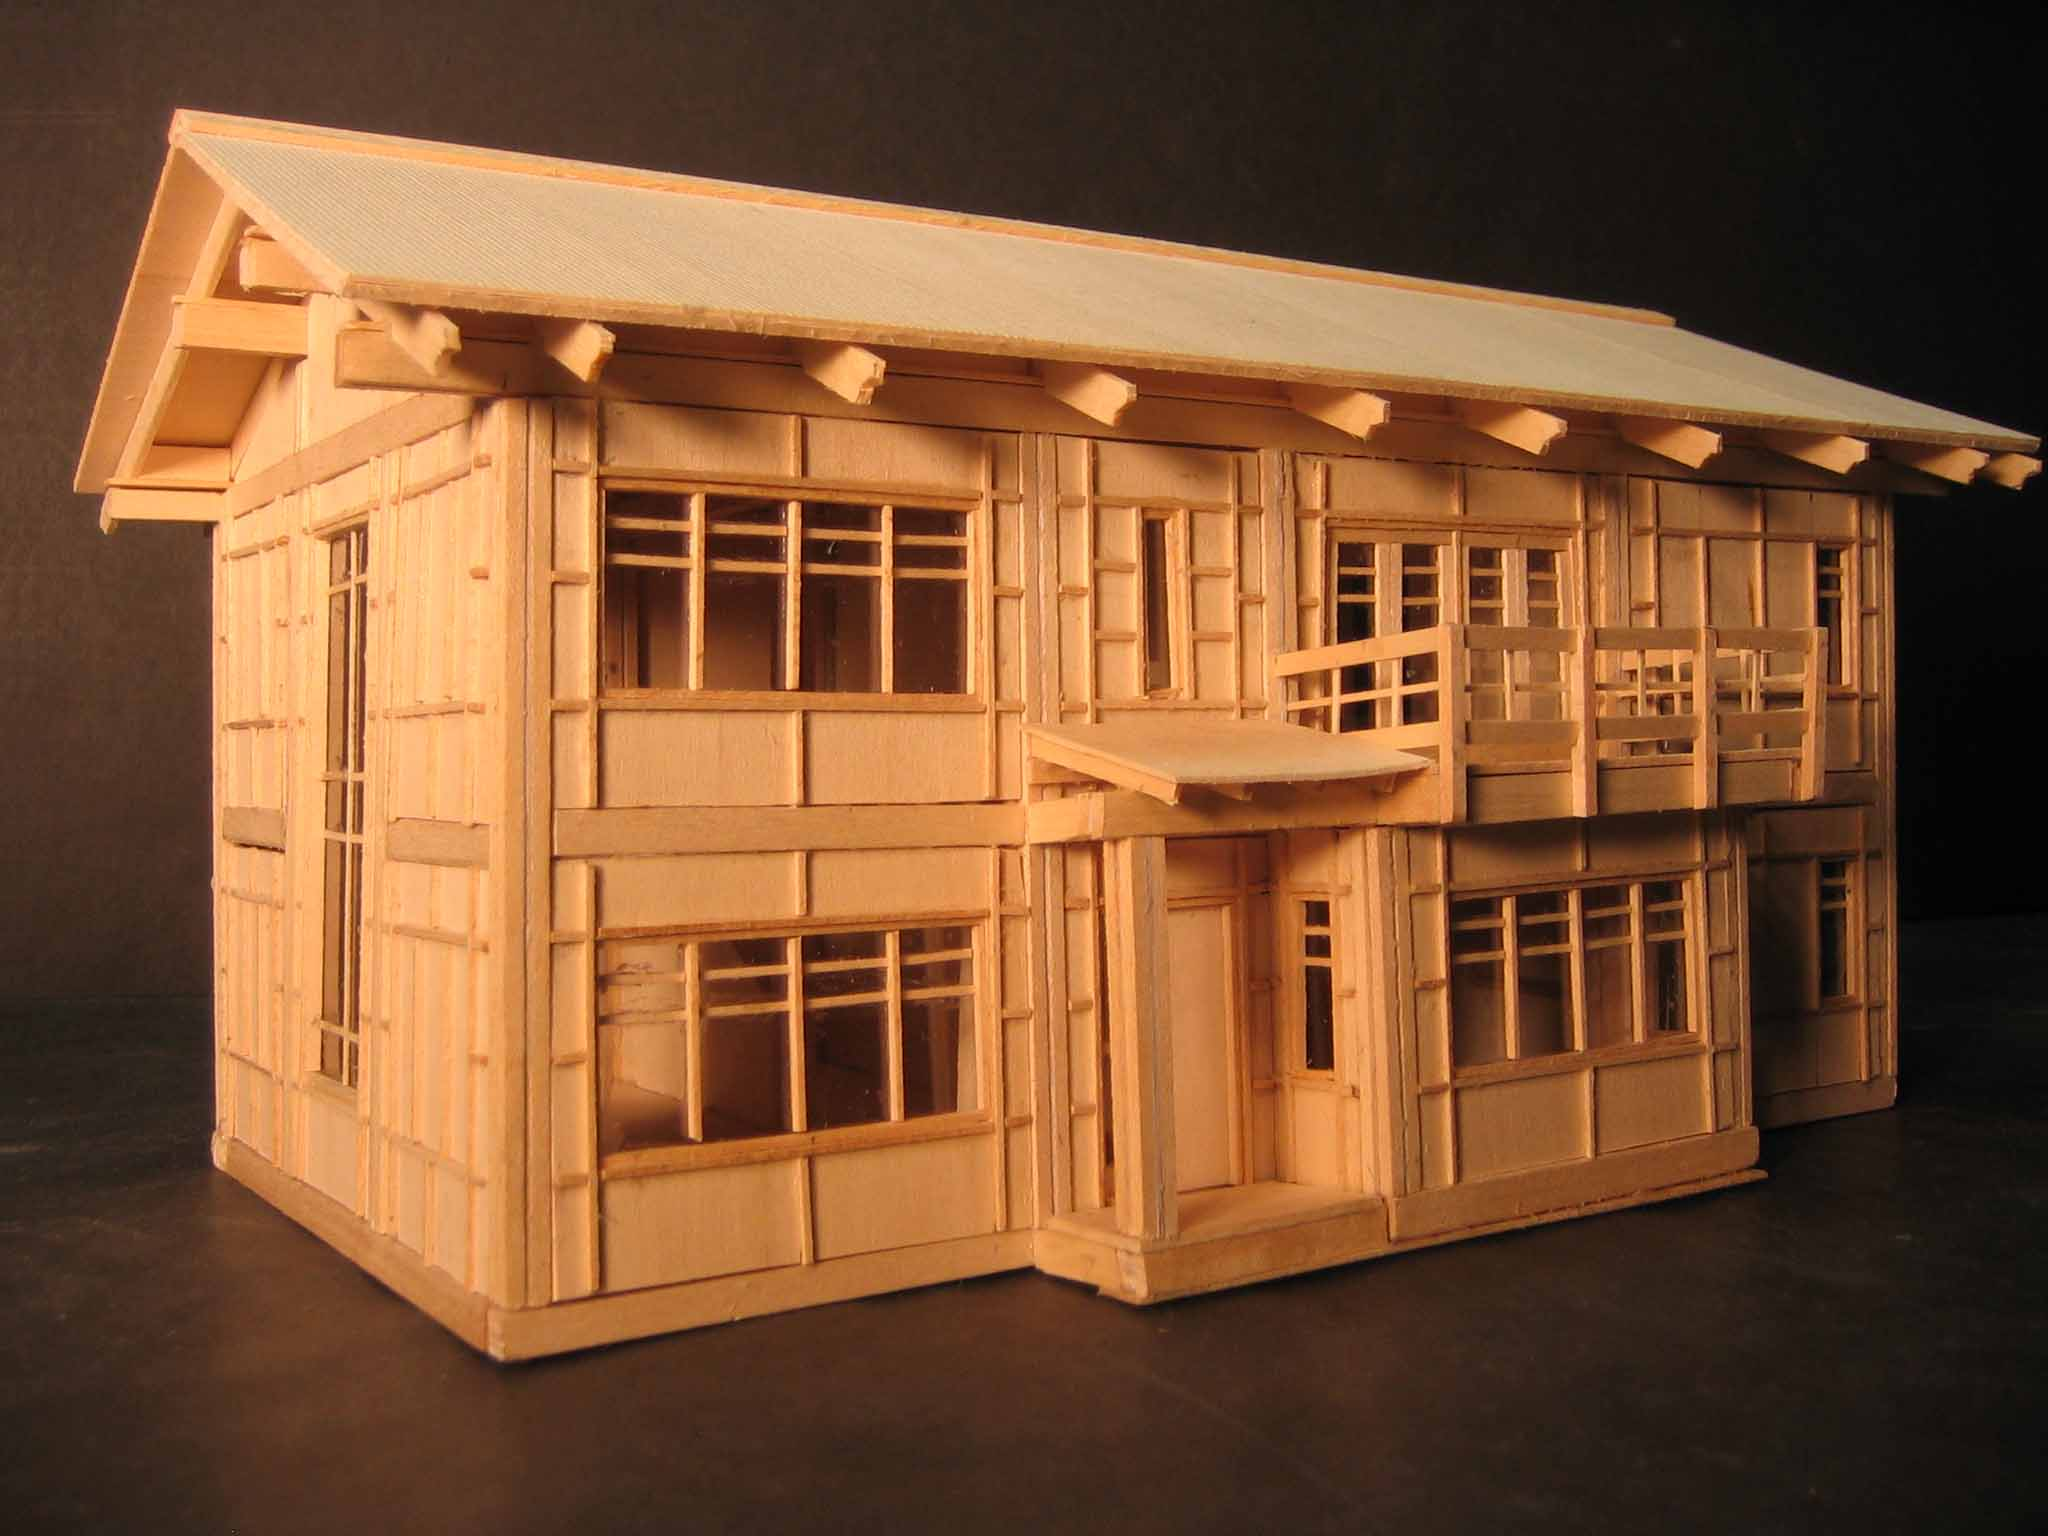 Remarkable Japanese Timber Frame House 2048 x 1536 · 159 kB · jpeg